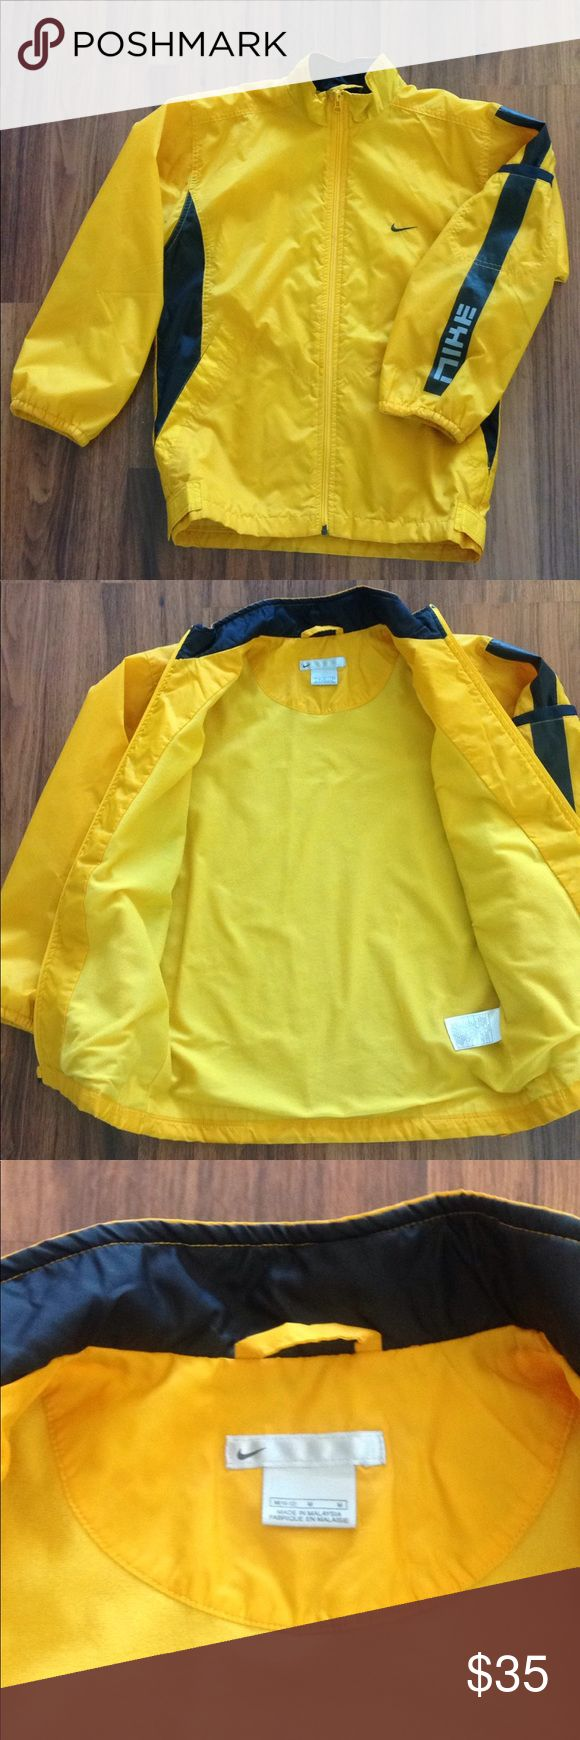 Boy's Nike Windrunner Water Resistant Jacket, Boy's Nike Windrunner Water Resistant Jacket, Size M (10 - 12) Color: yellow & black. In great condition  Smoke and pet free home. Nike Jackets & Coats Raincoats